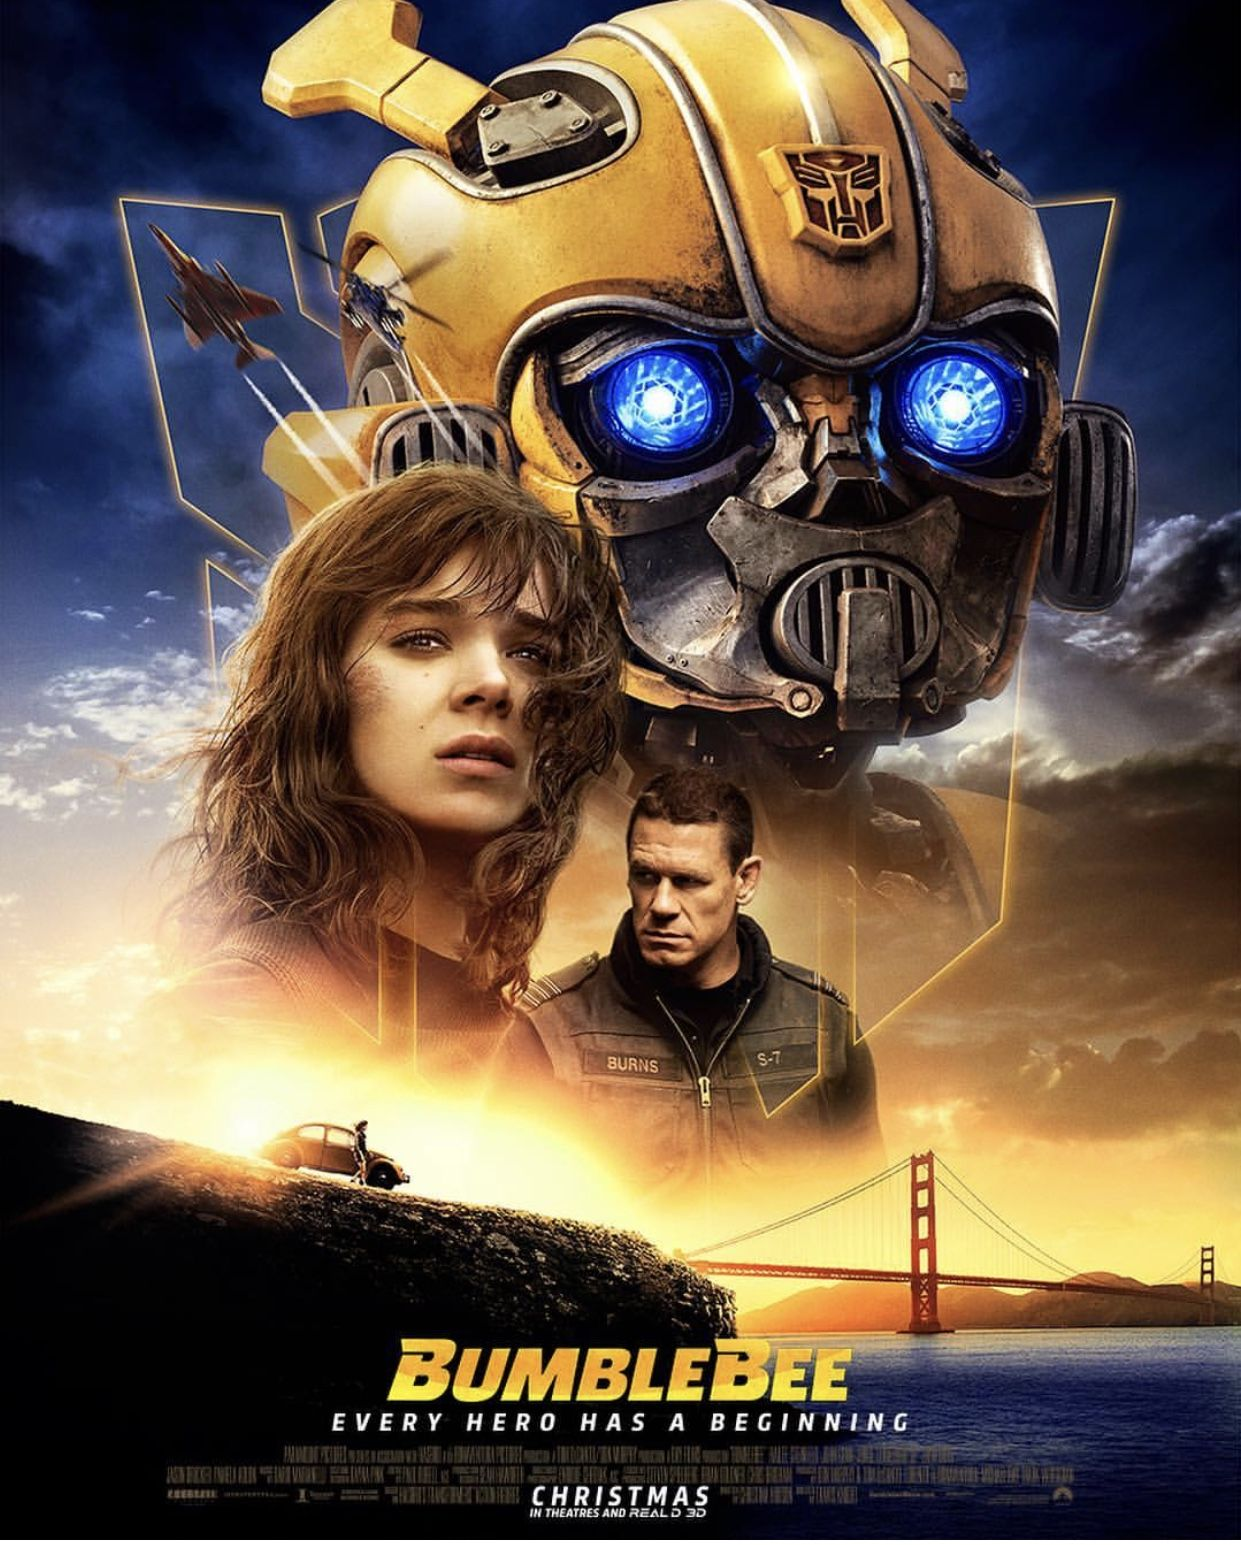 New Transformers Bumblebee Poster Revealed Jointhebuzz Baixar